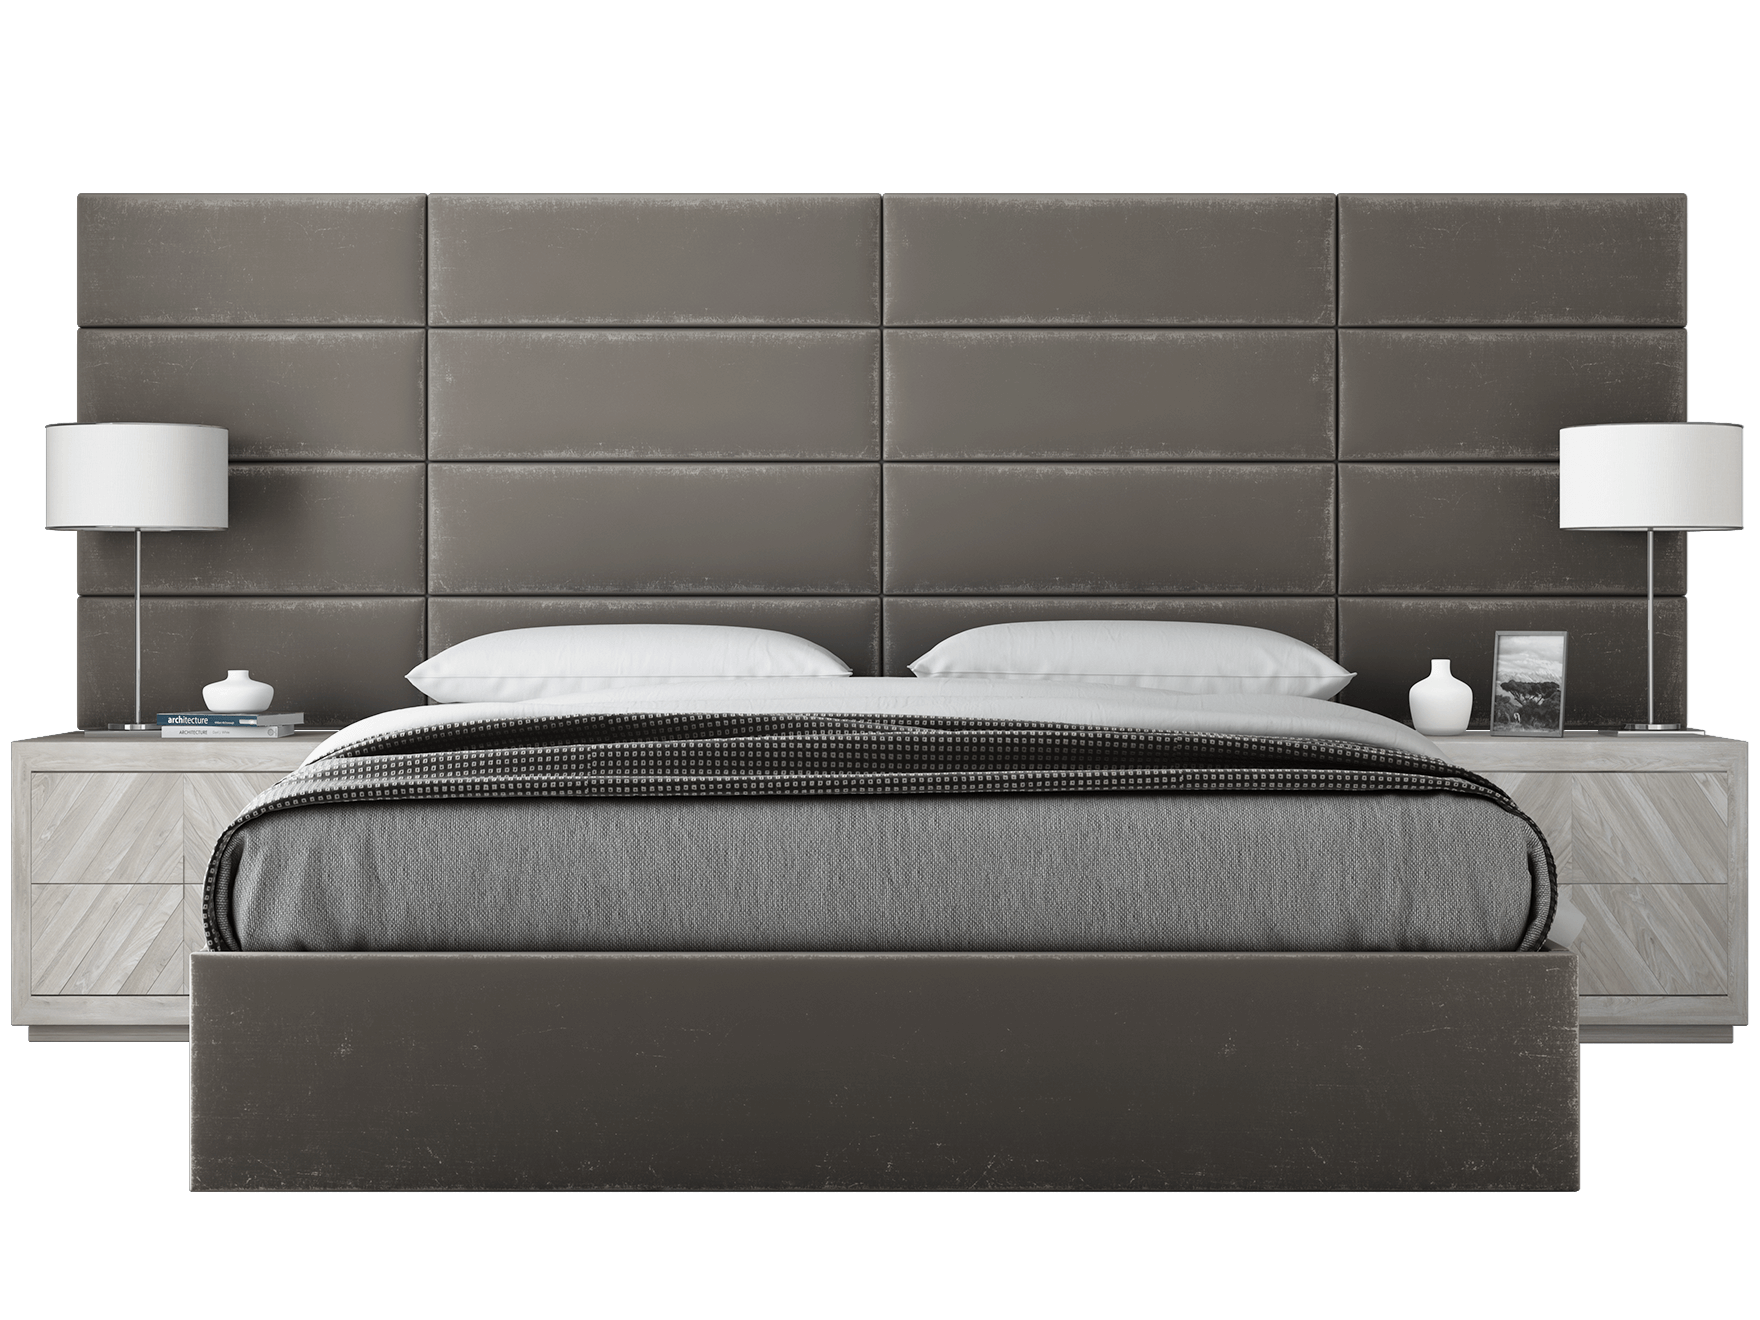 Vant Platform Bed Upholstered Walls King Size Headboard Upholstered Wall Panels